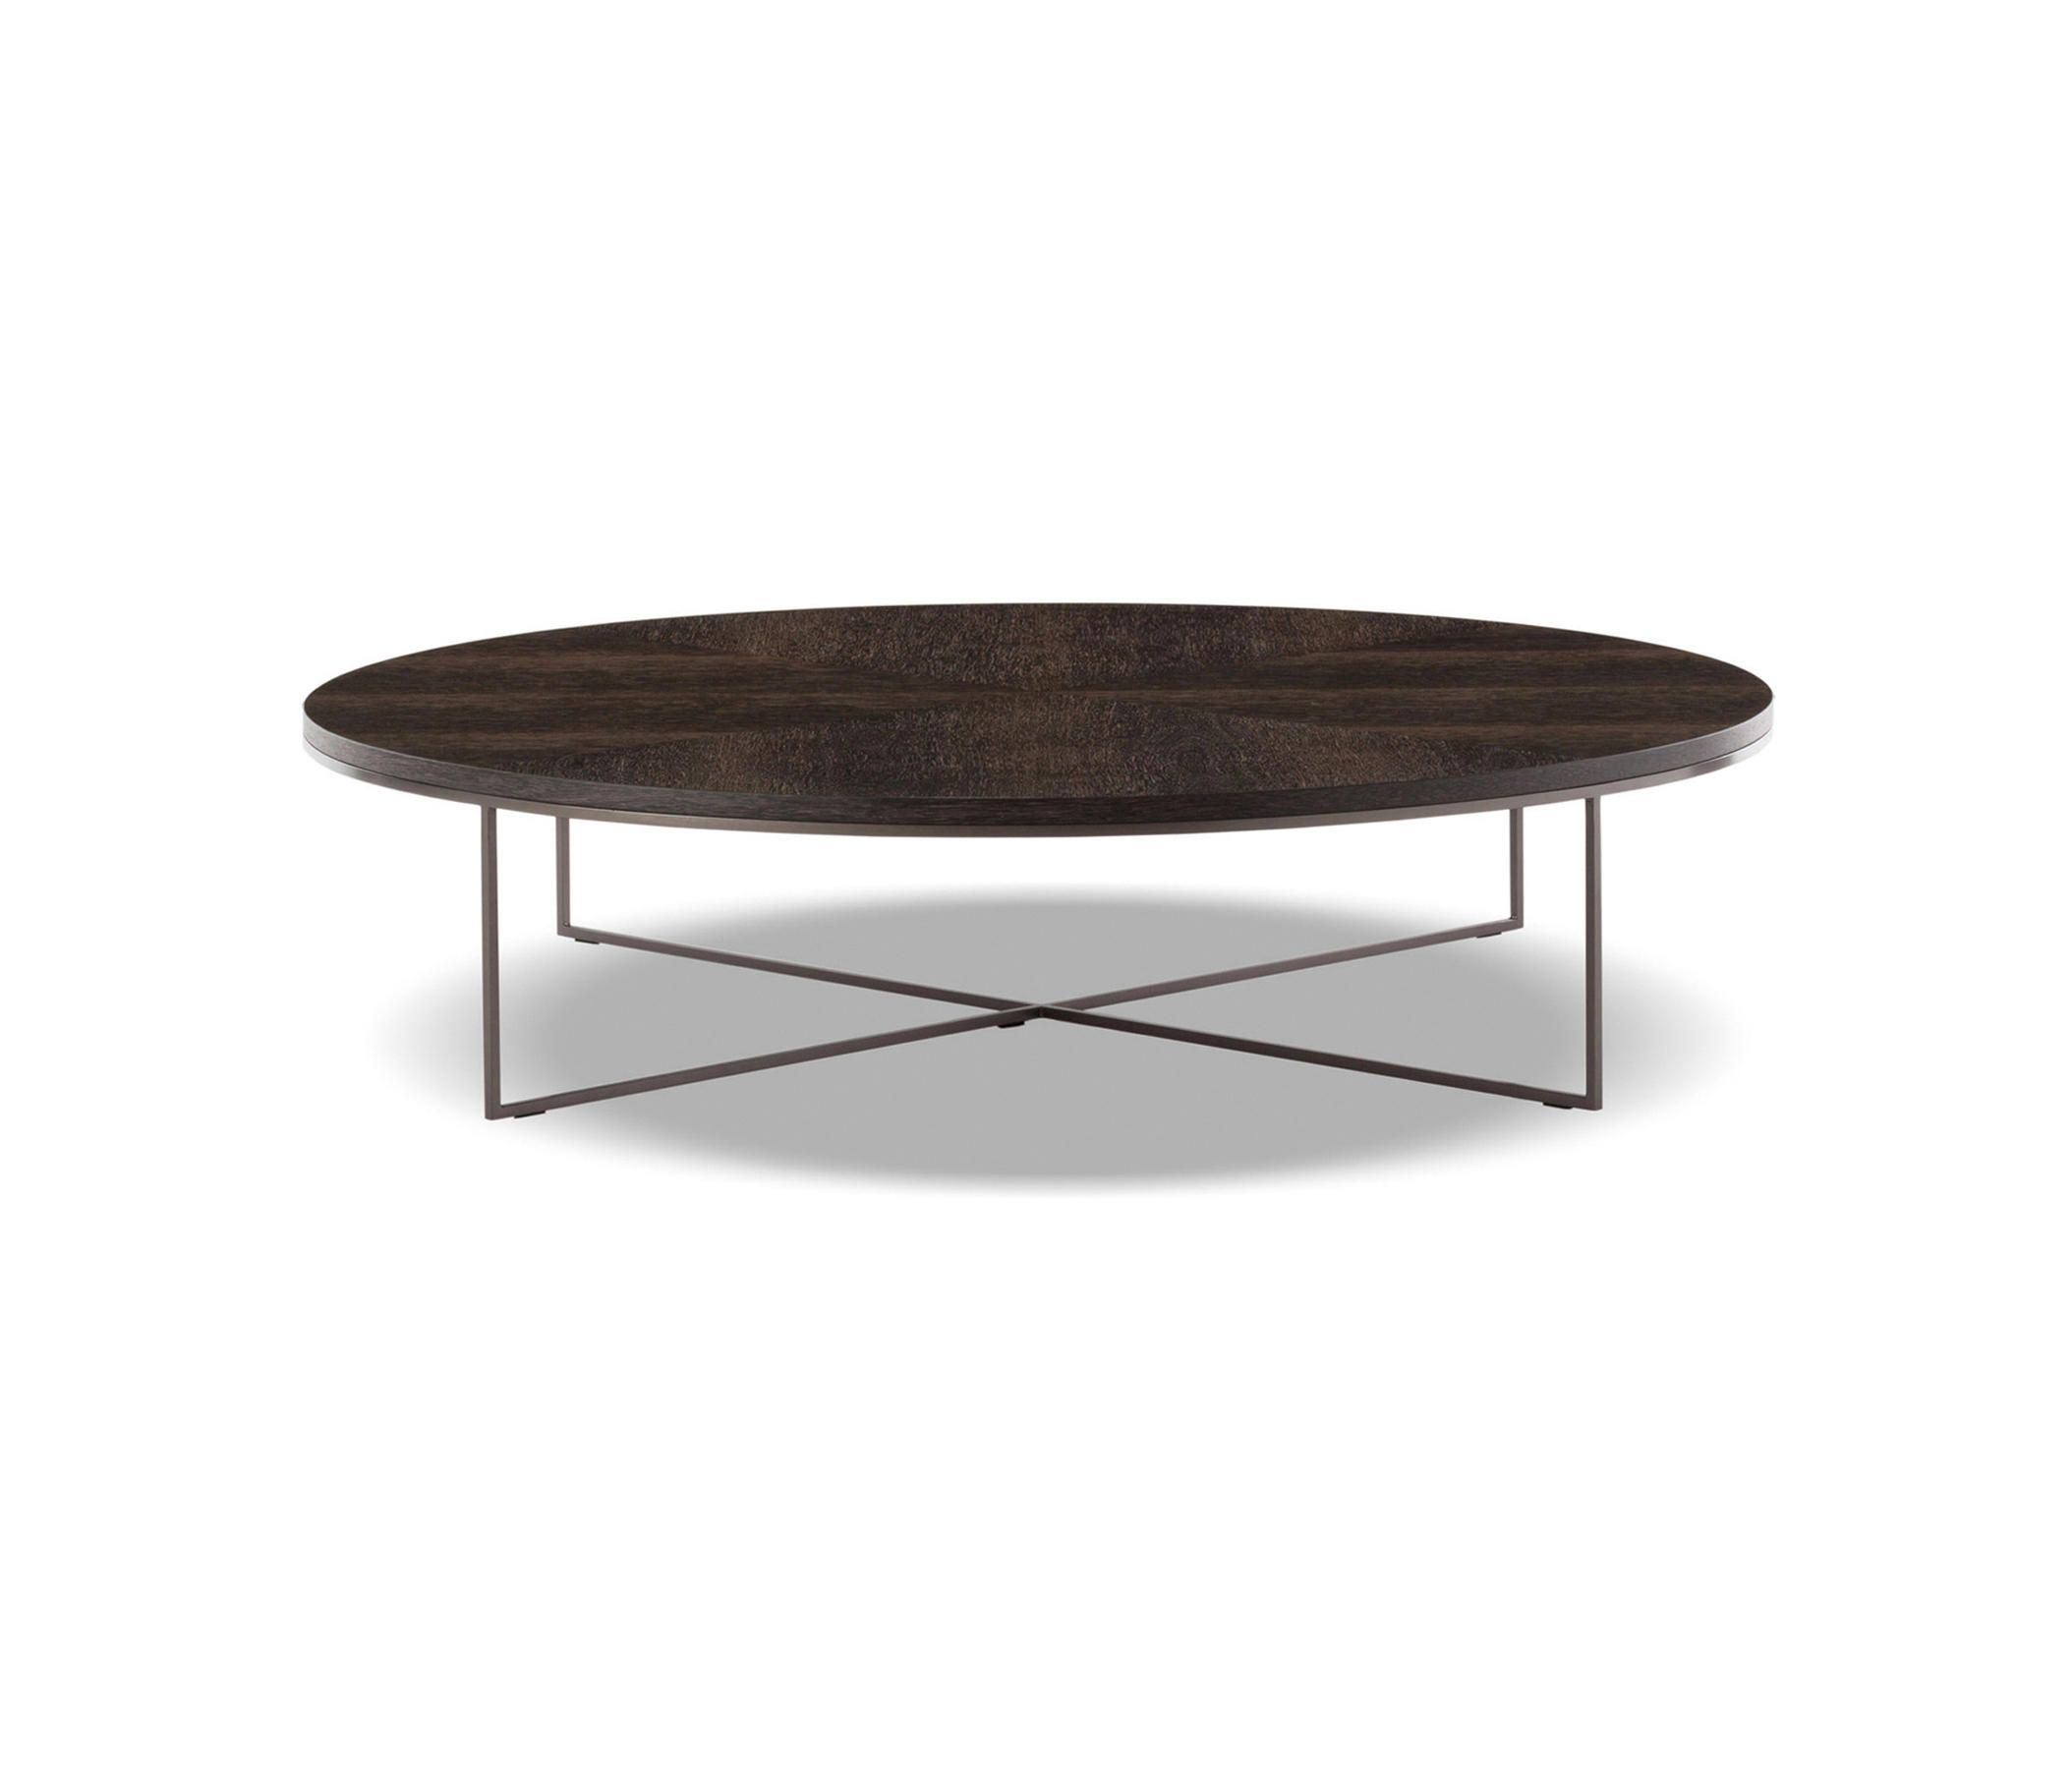 Calder Bronze Coffee Table By Minotti Lounge Tables ロー